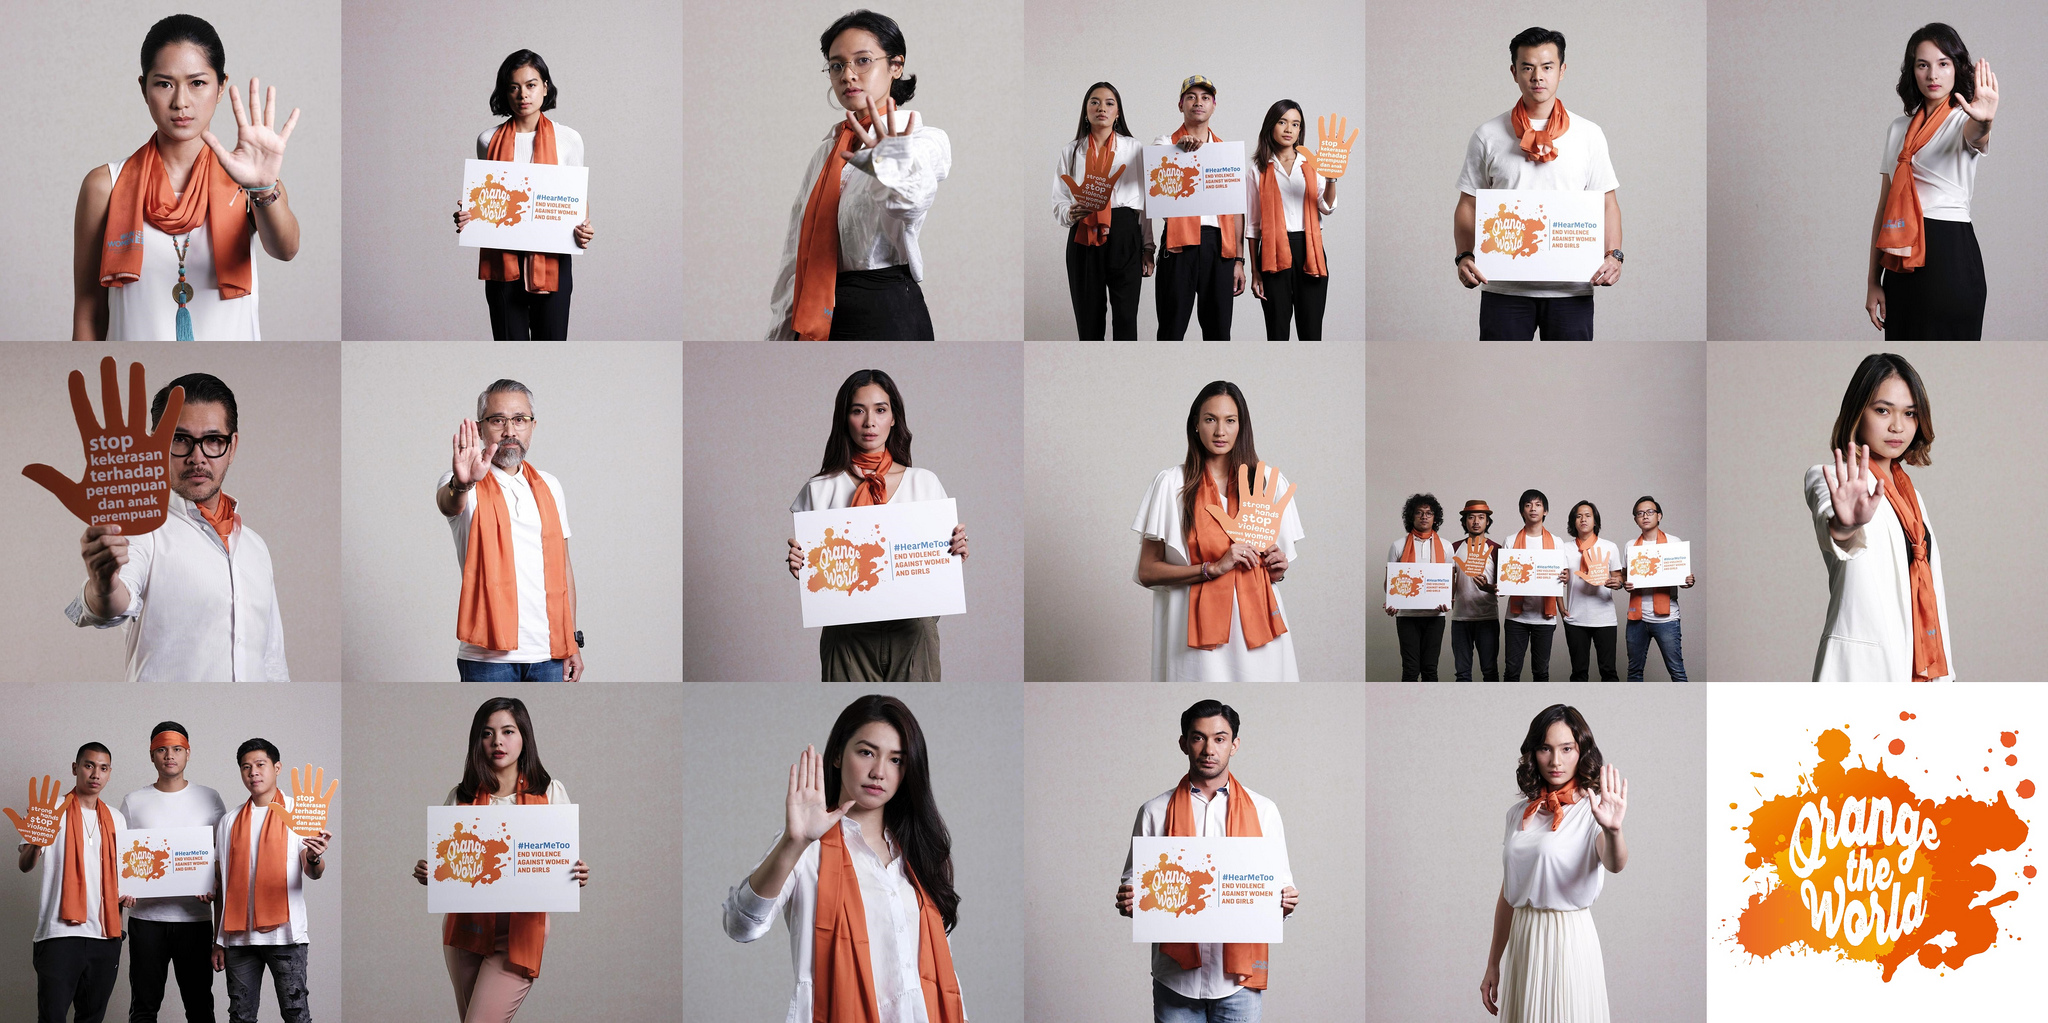 25 Indonesian influencers were participated in the video message to end violence against women. The video message was produced with the objective to encourage people to take action to end violence against women. In the video, the influencers encourage everyone to stand in solidarity with survivors, speak out, and take action to stop normalizing violence against women and girls. The video was published on the 25th November 2018 to mark 16 Days of Activism against Gender Based Violence. Photo: UN Women/Putra Djohan